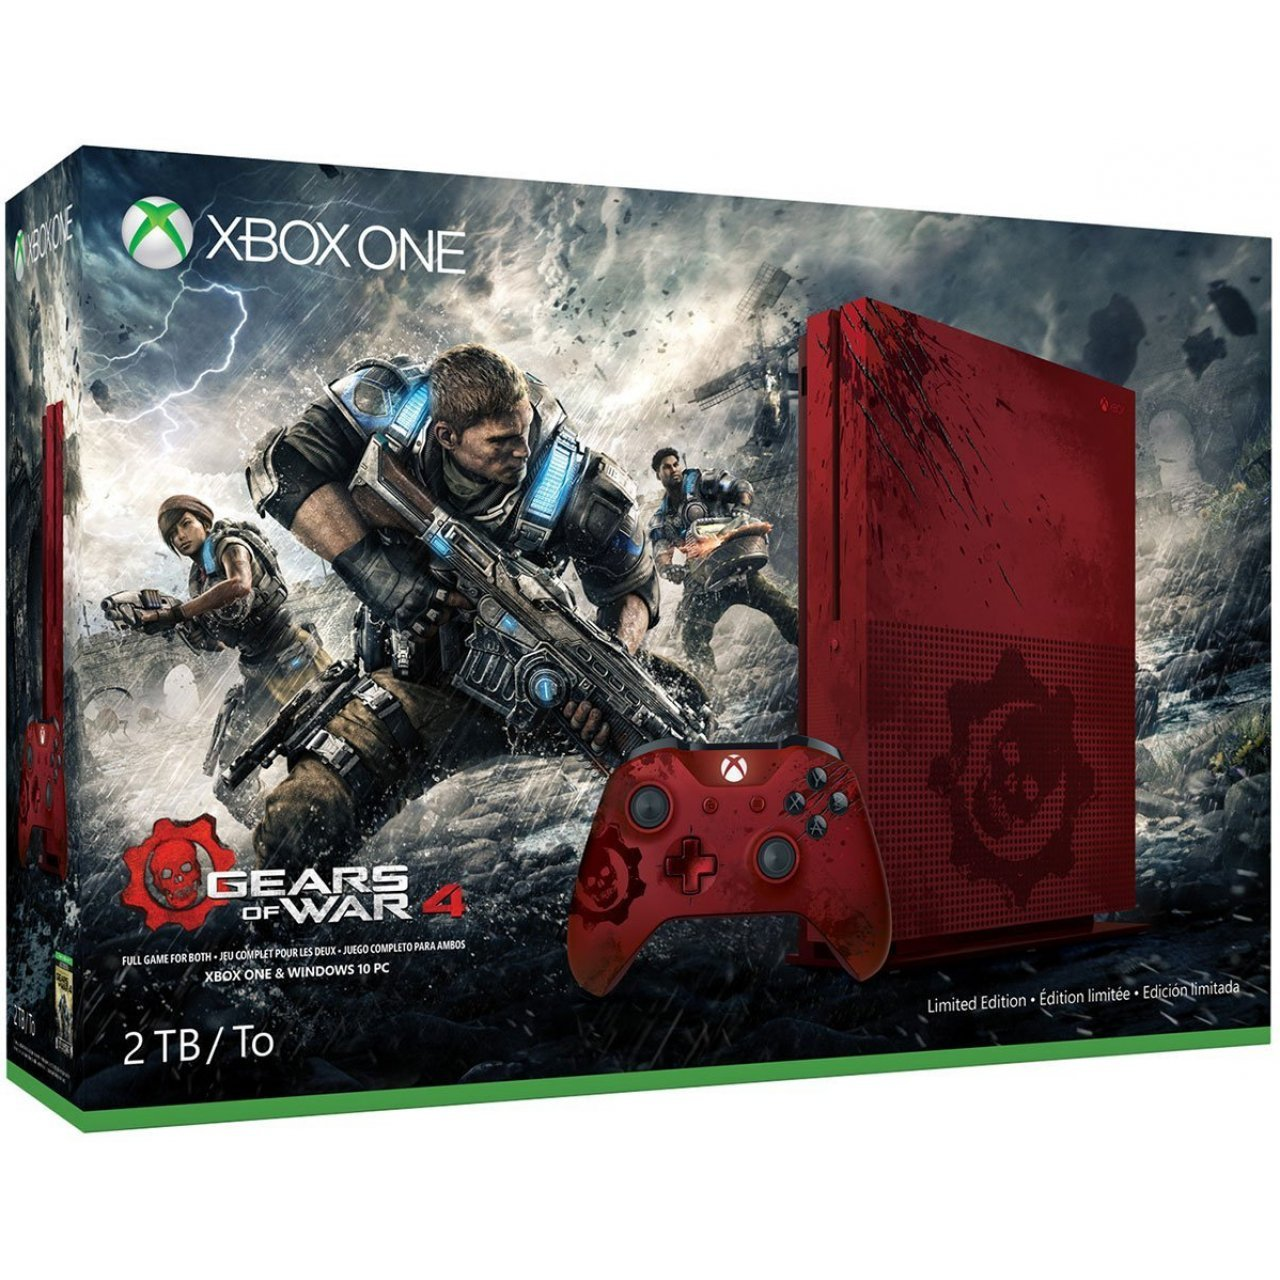 Xbox One S Gears Of War 4 Limited Edition Bundle 2tb Console